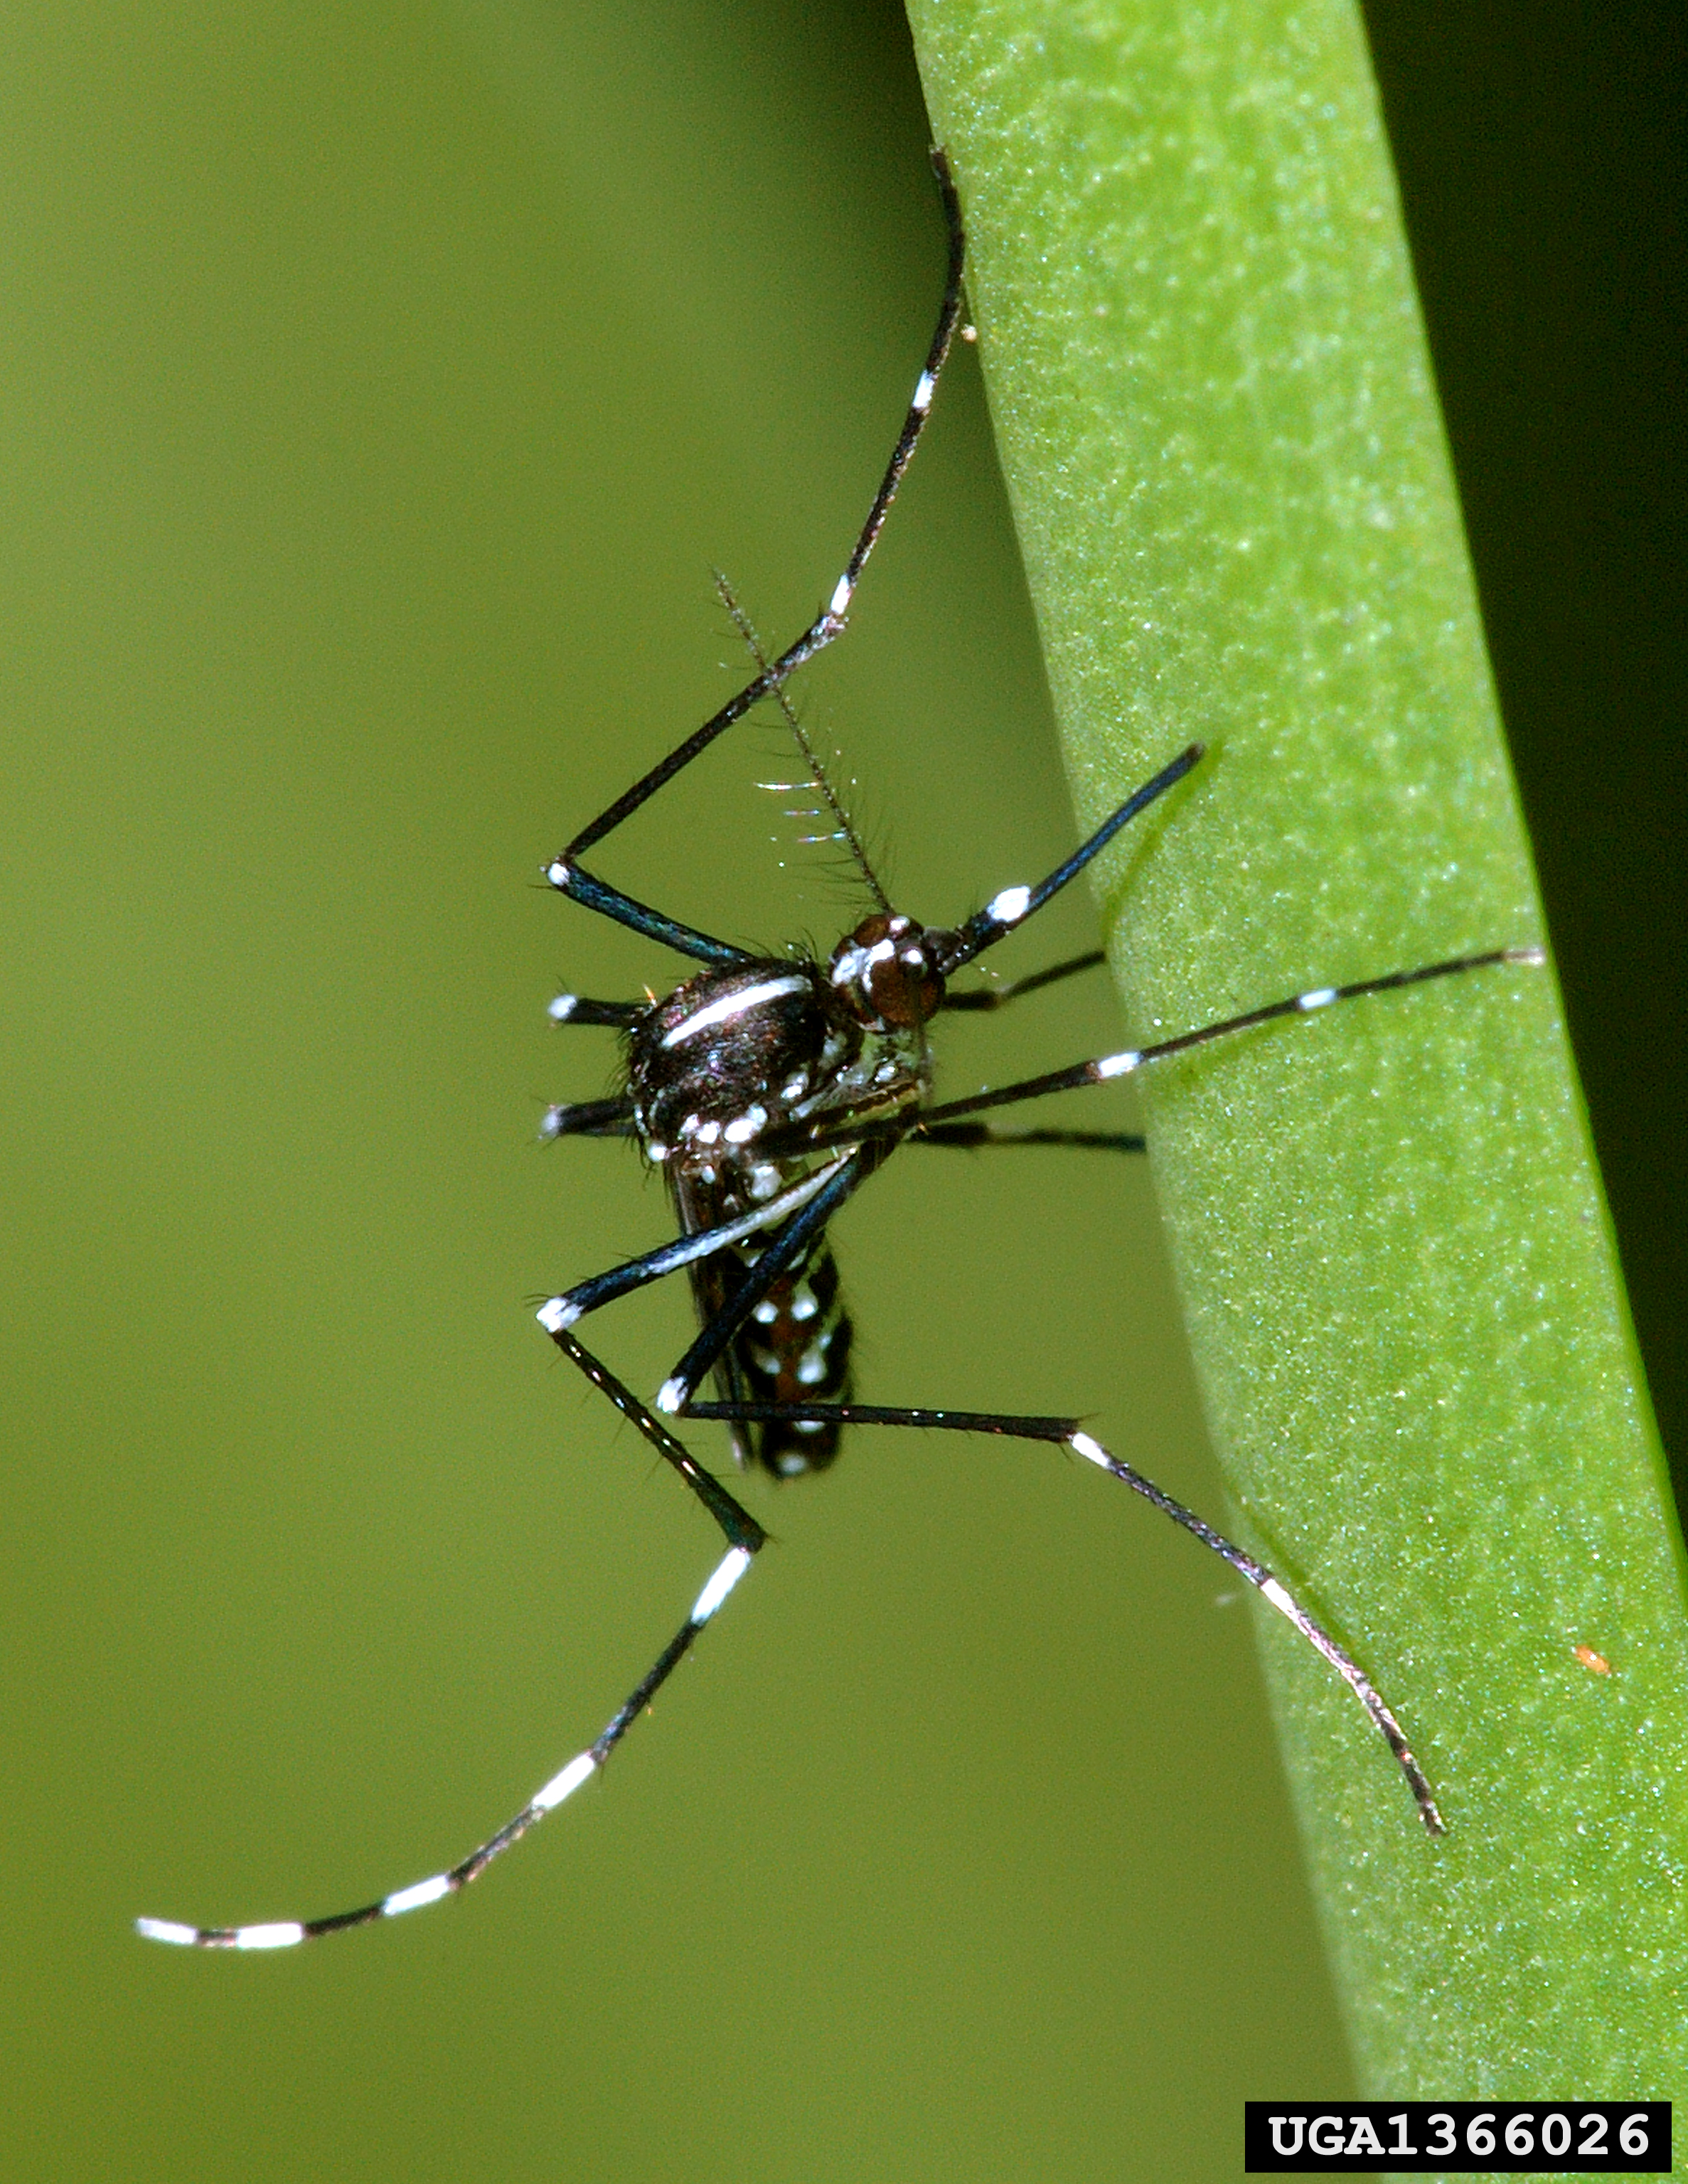 Small but deadly: the Asian tiger mosquito is one of the world's deadliest pests.